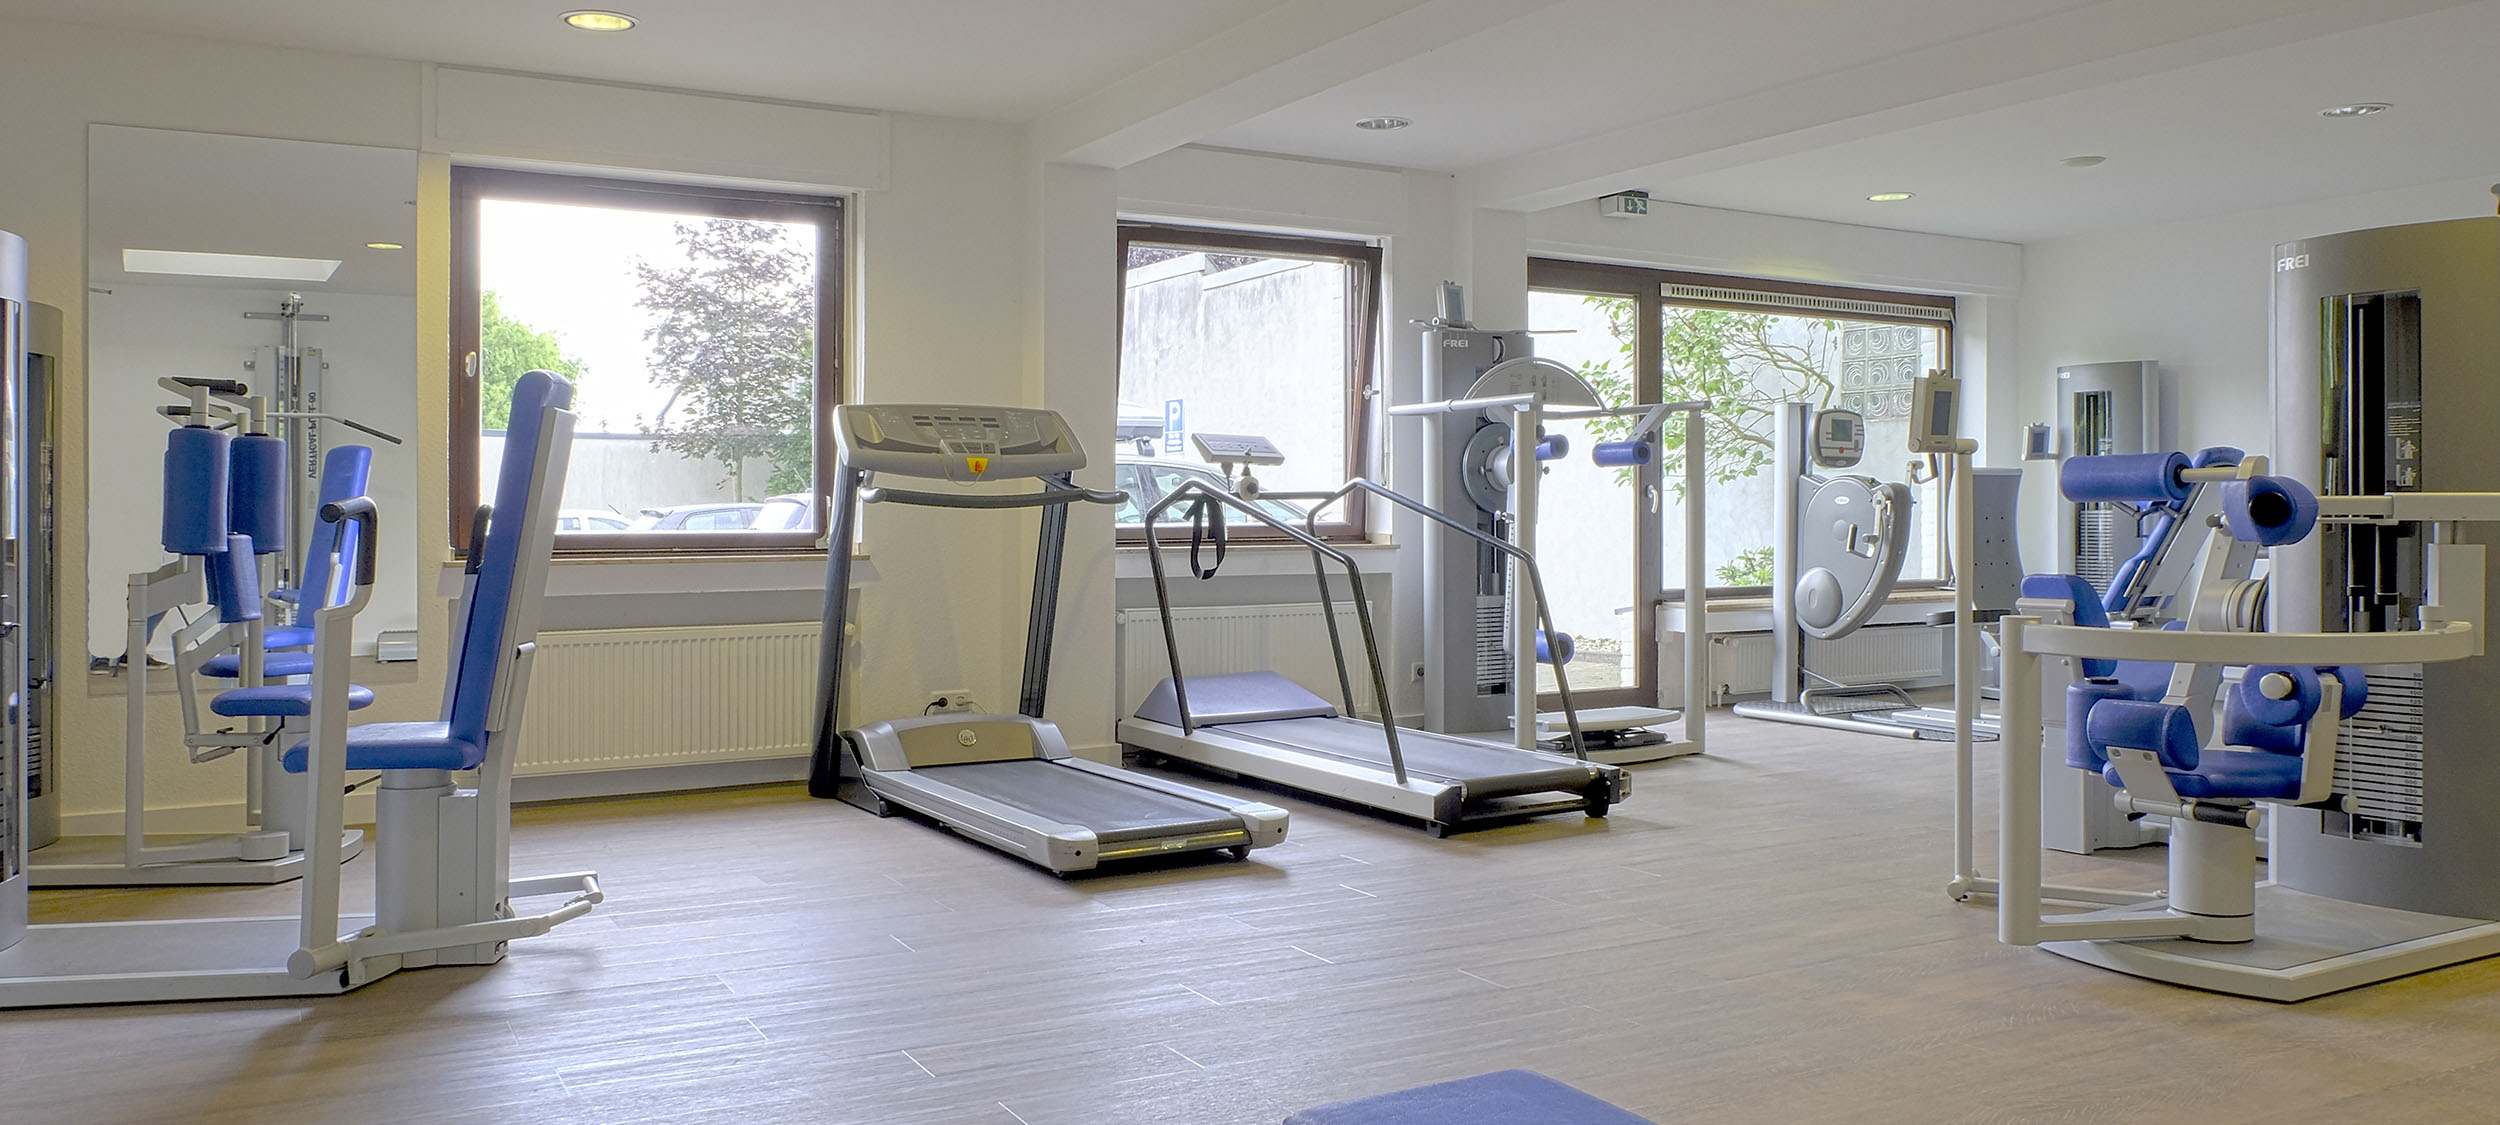 Michael Zuidberg Physiotherapie UG | Header 4